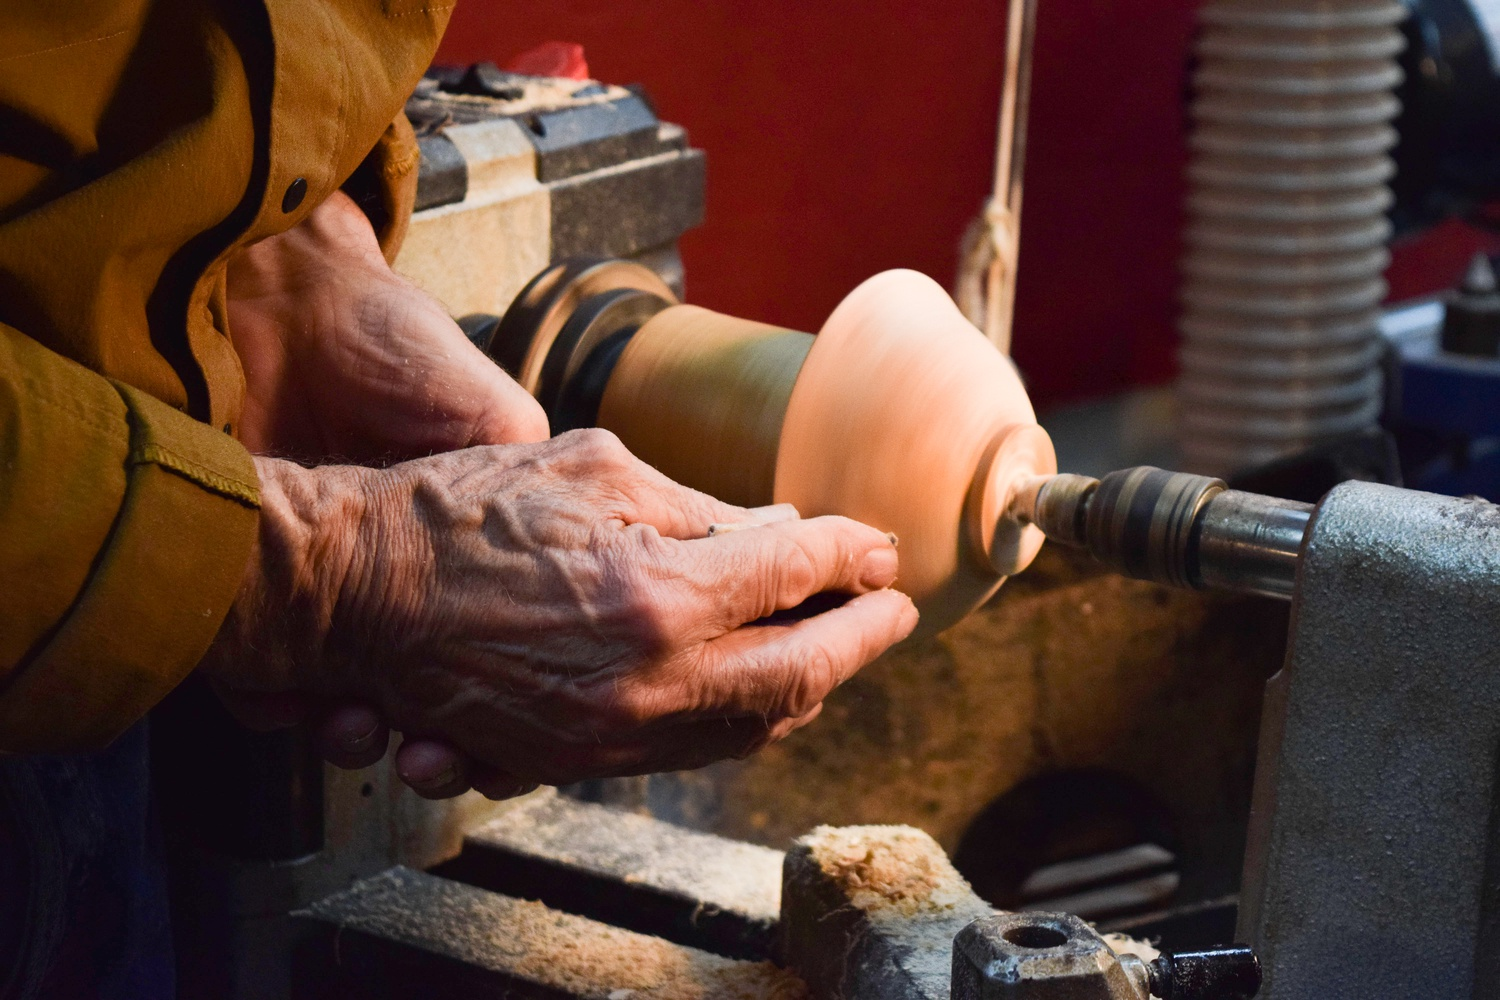 Alan Hark uses his hands to sand the outside of one of his students' wooden bowls, made of Black Cherry, as it spins on the lathe.